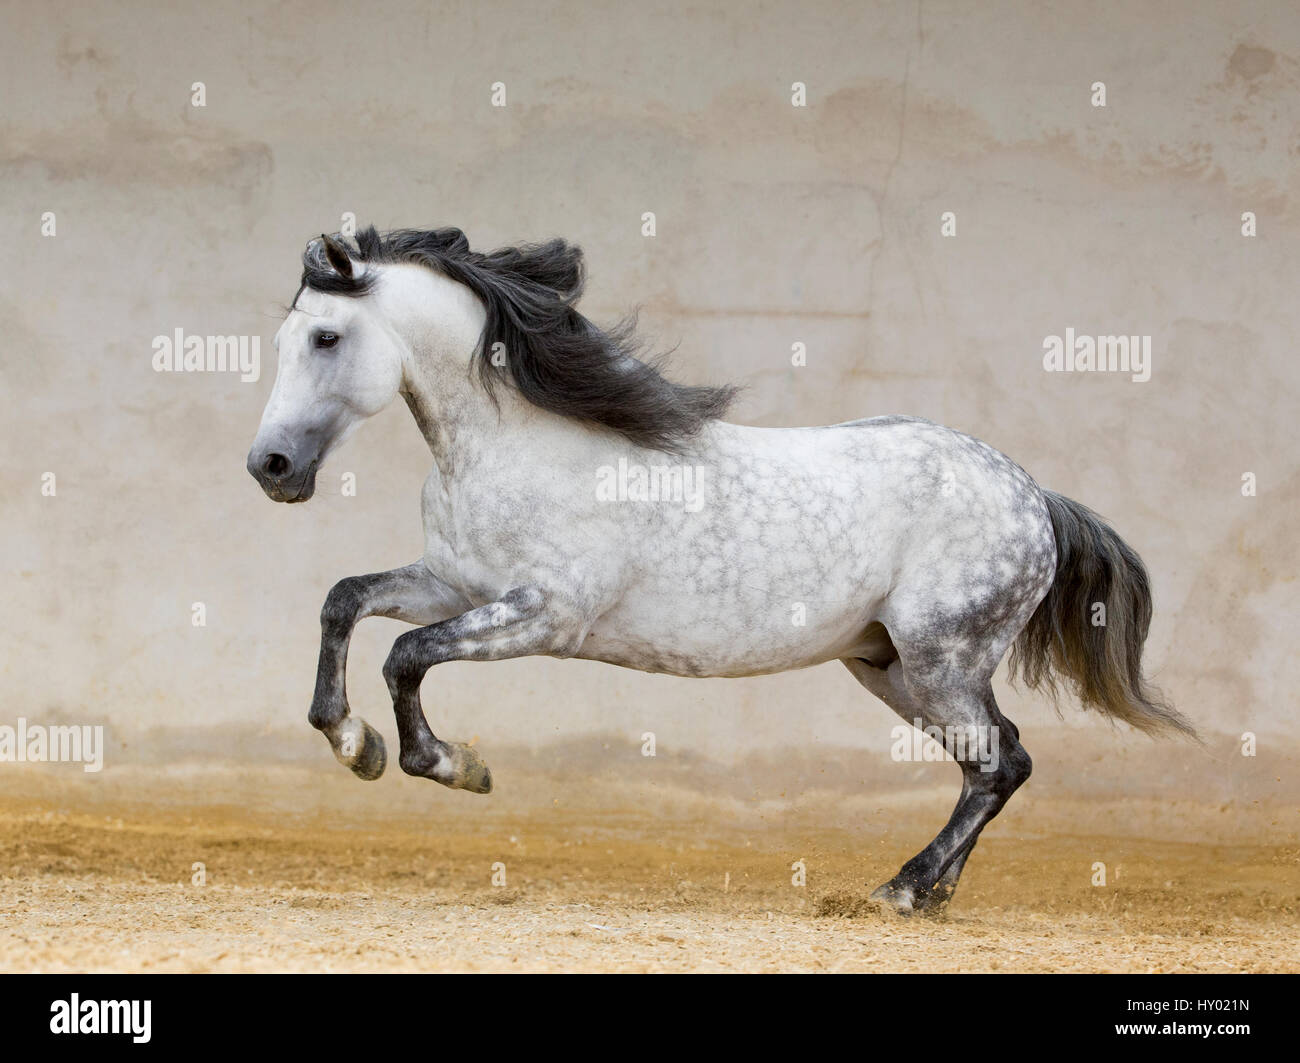 Dapple grey Andalusian stallion running in arena, Northern France, Europe. - Stock Image